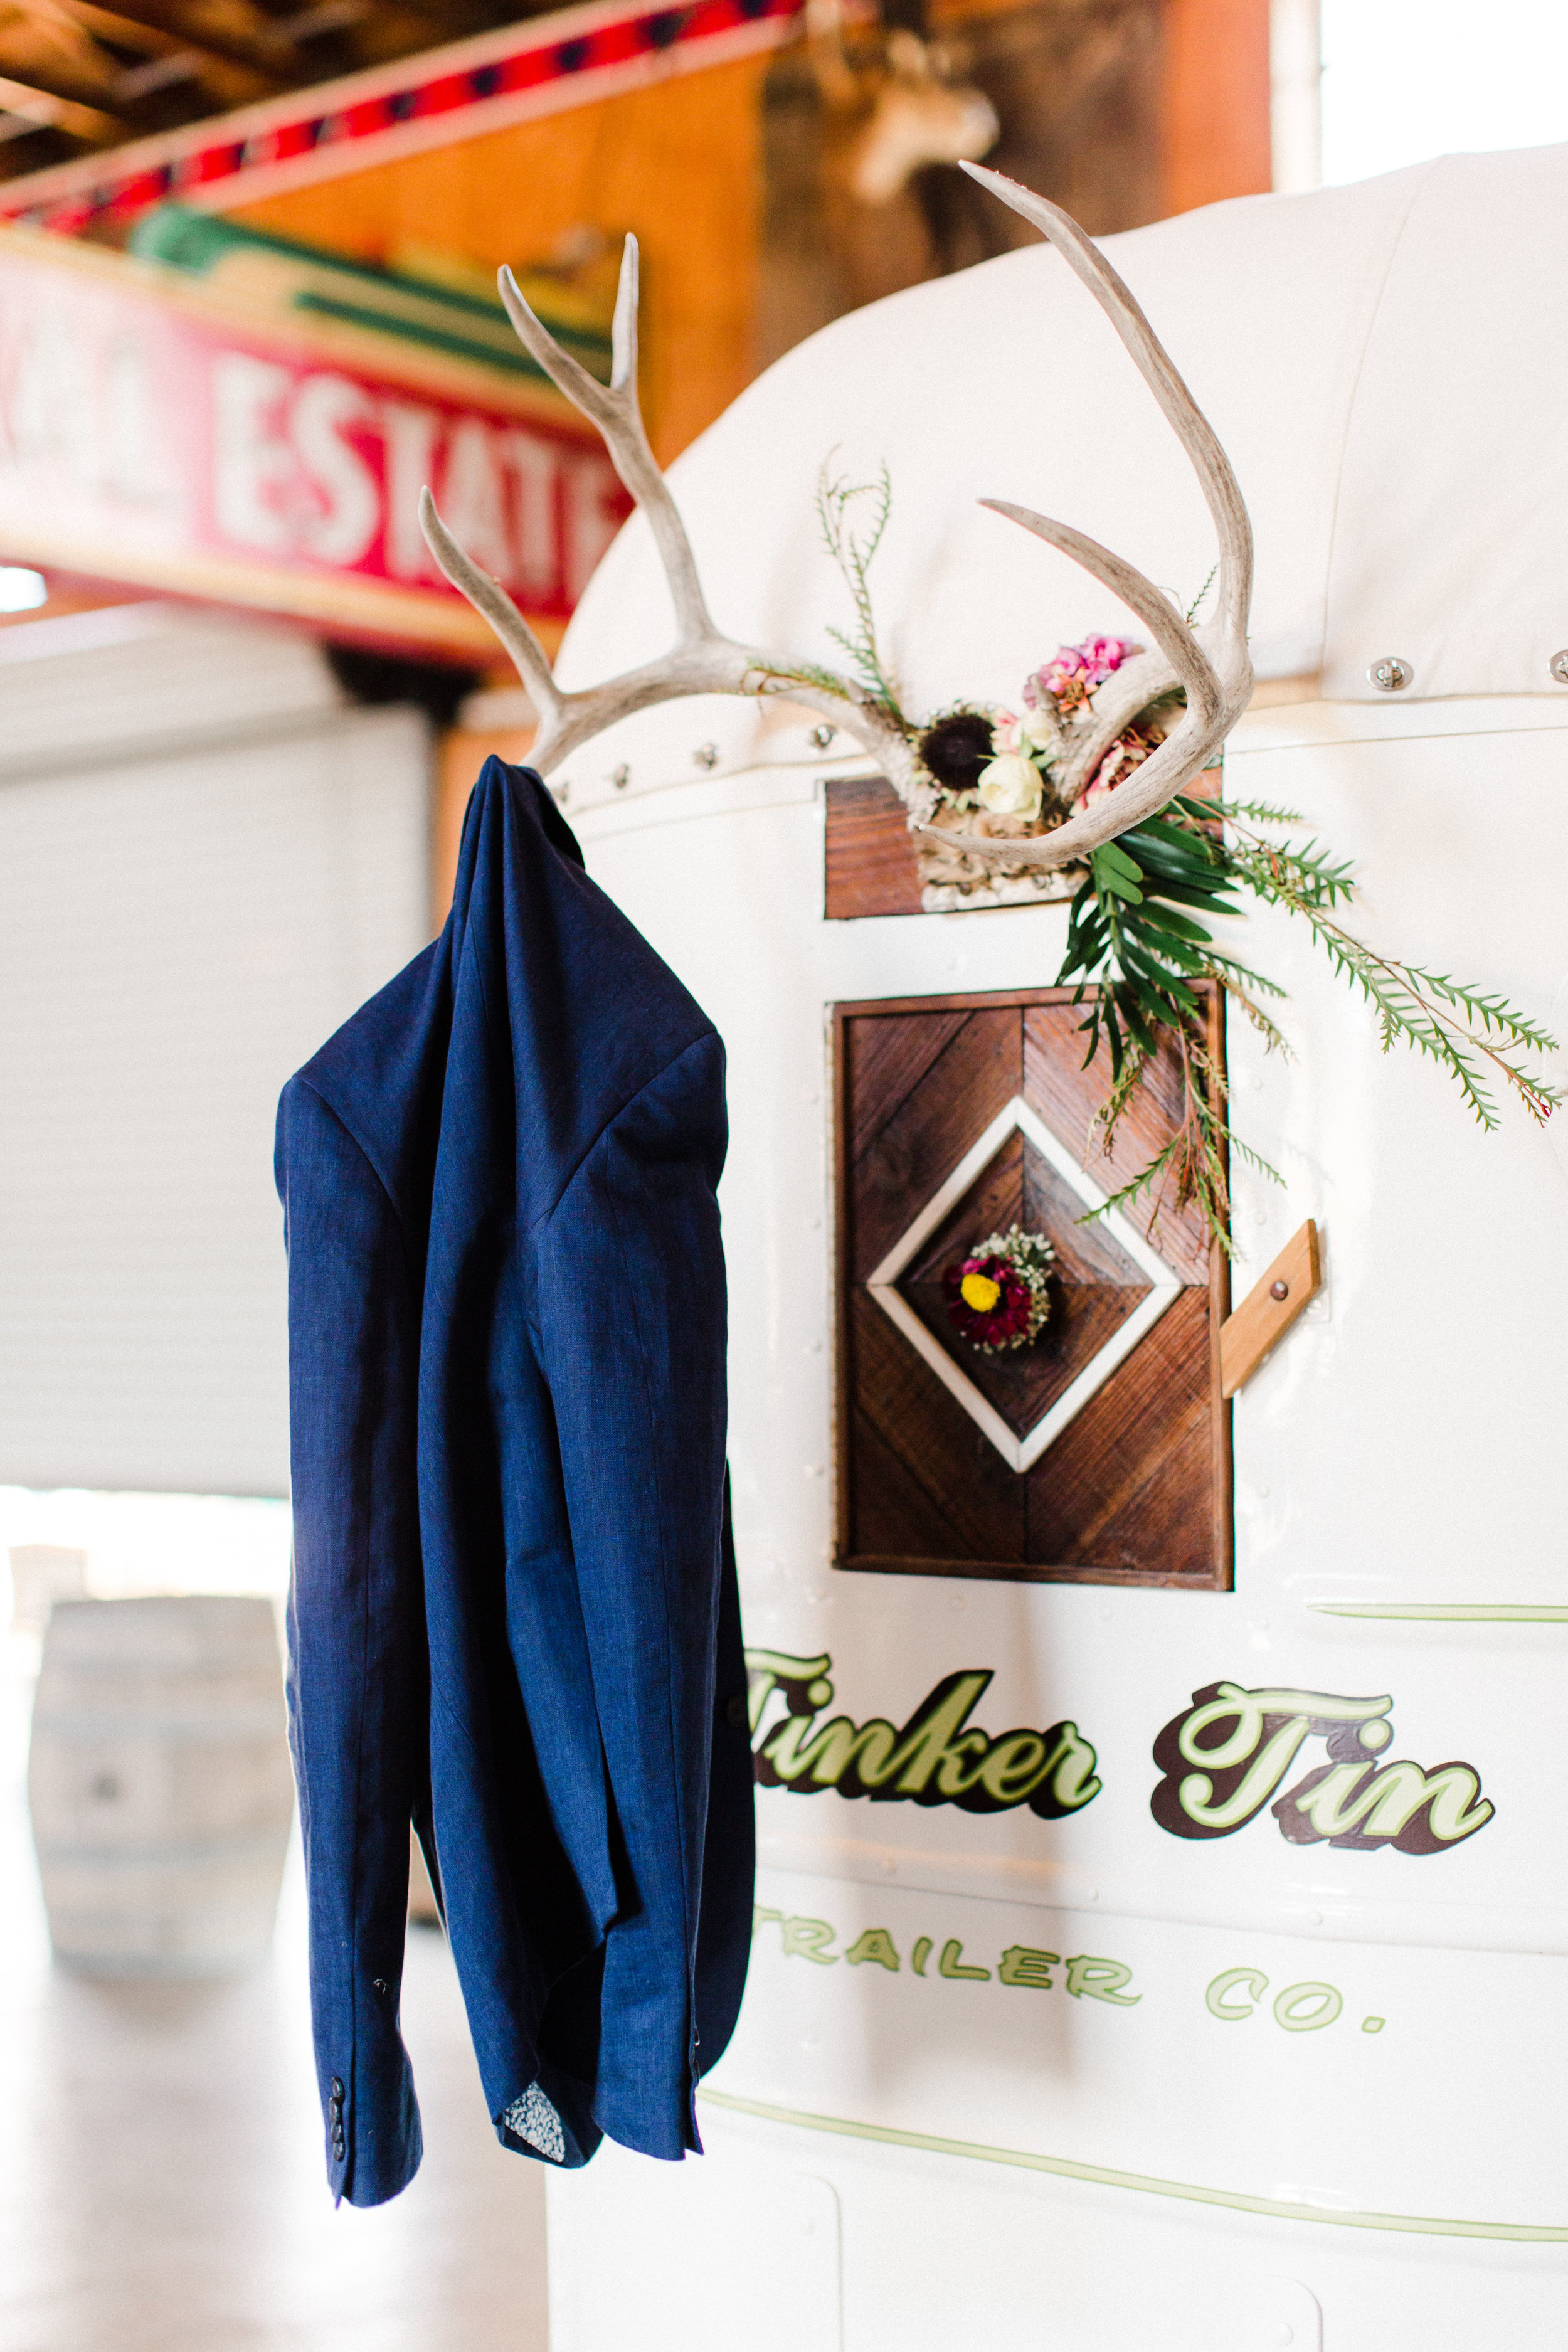 A fun detail shot of Tinker Tin Trailer Co.'s horse trailer vending bar.